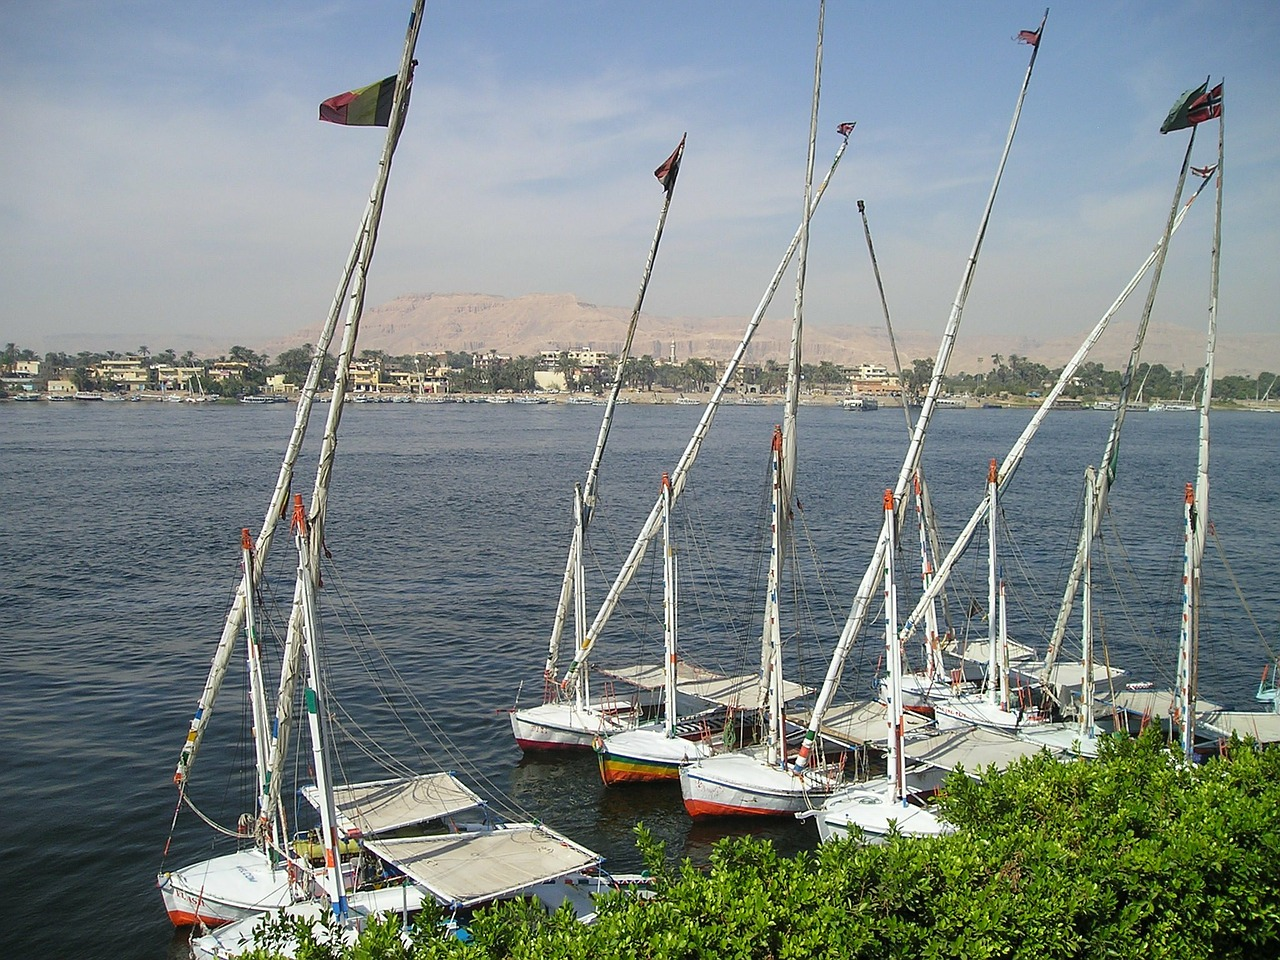 egypt,nile,felucca,boats,luxor,free pictures, free photos, free images, royalty free, free illustrations, public domain